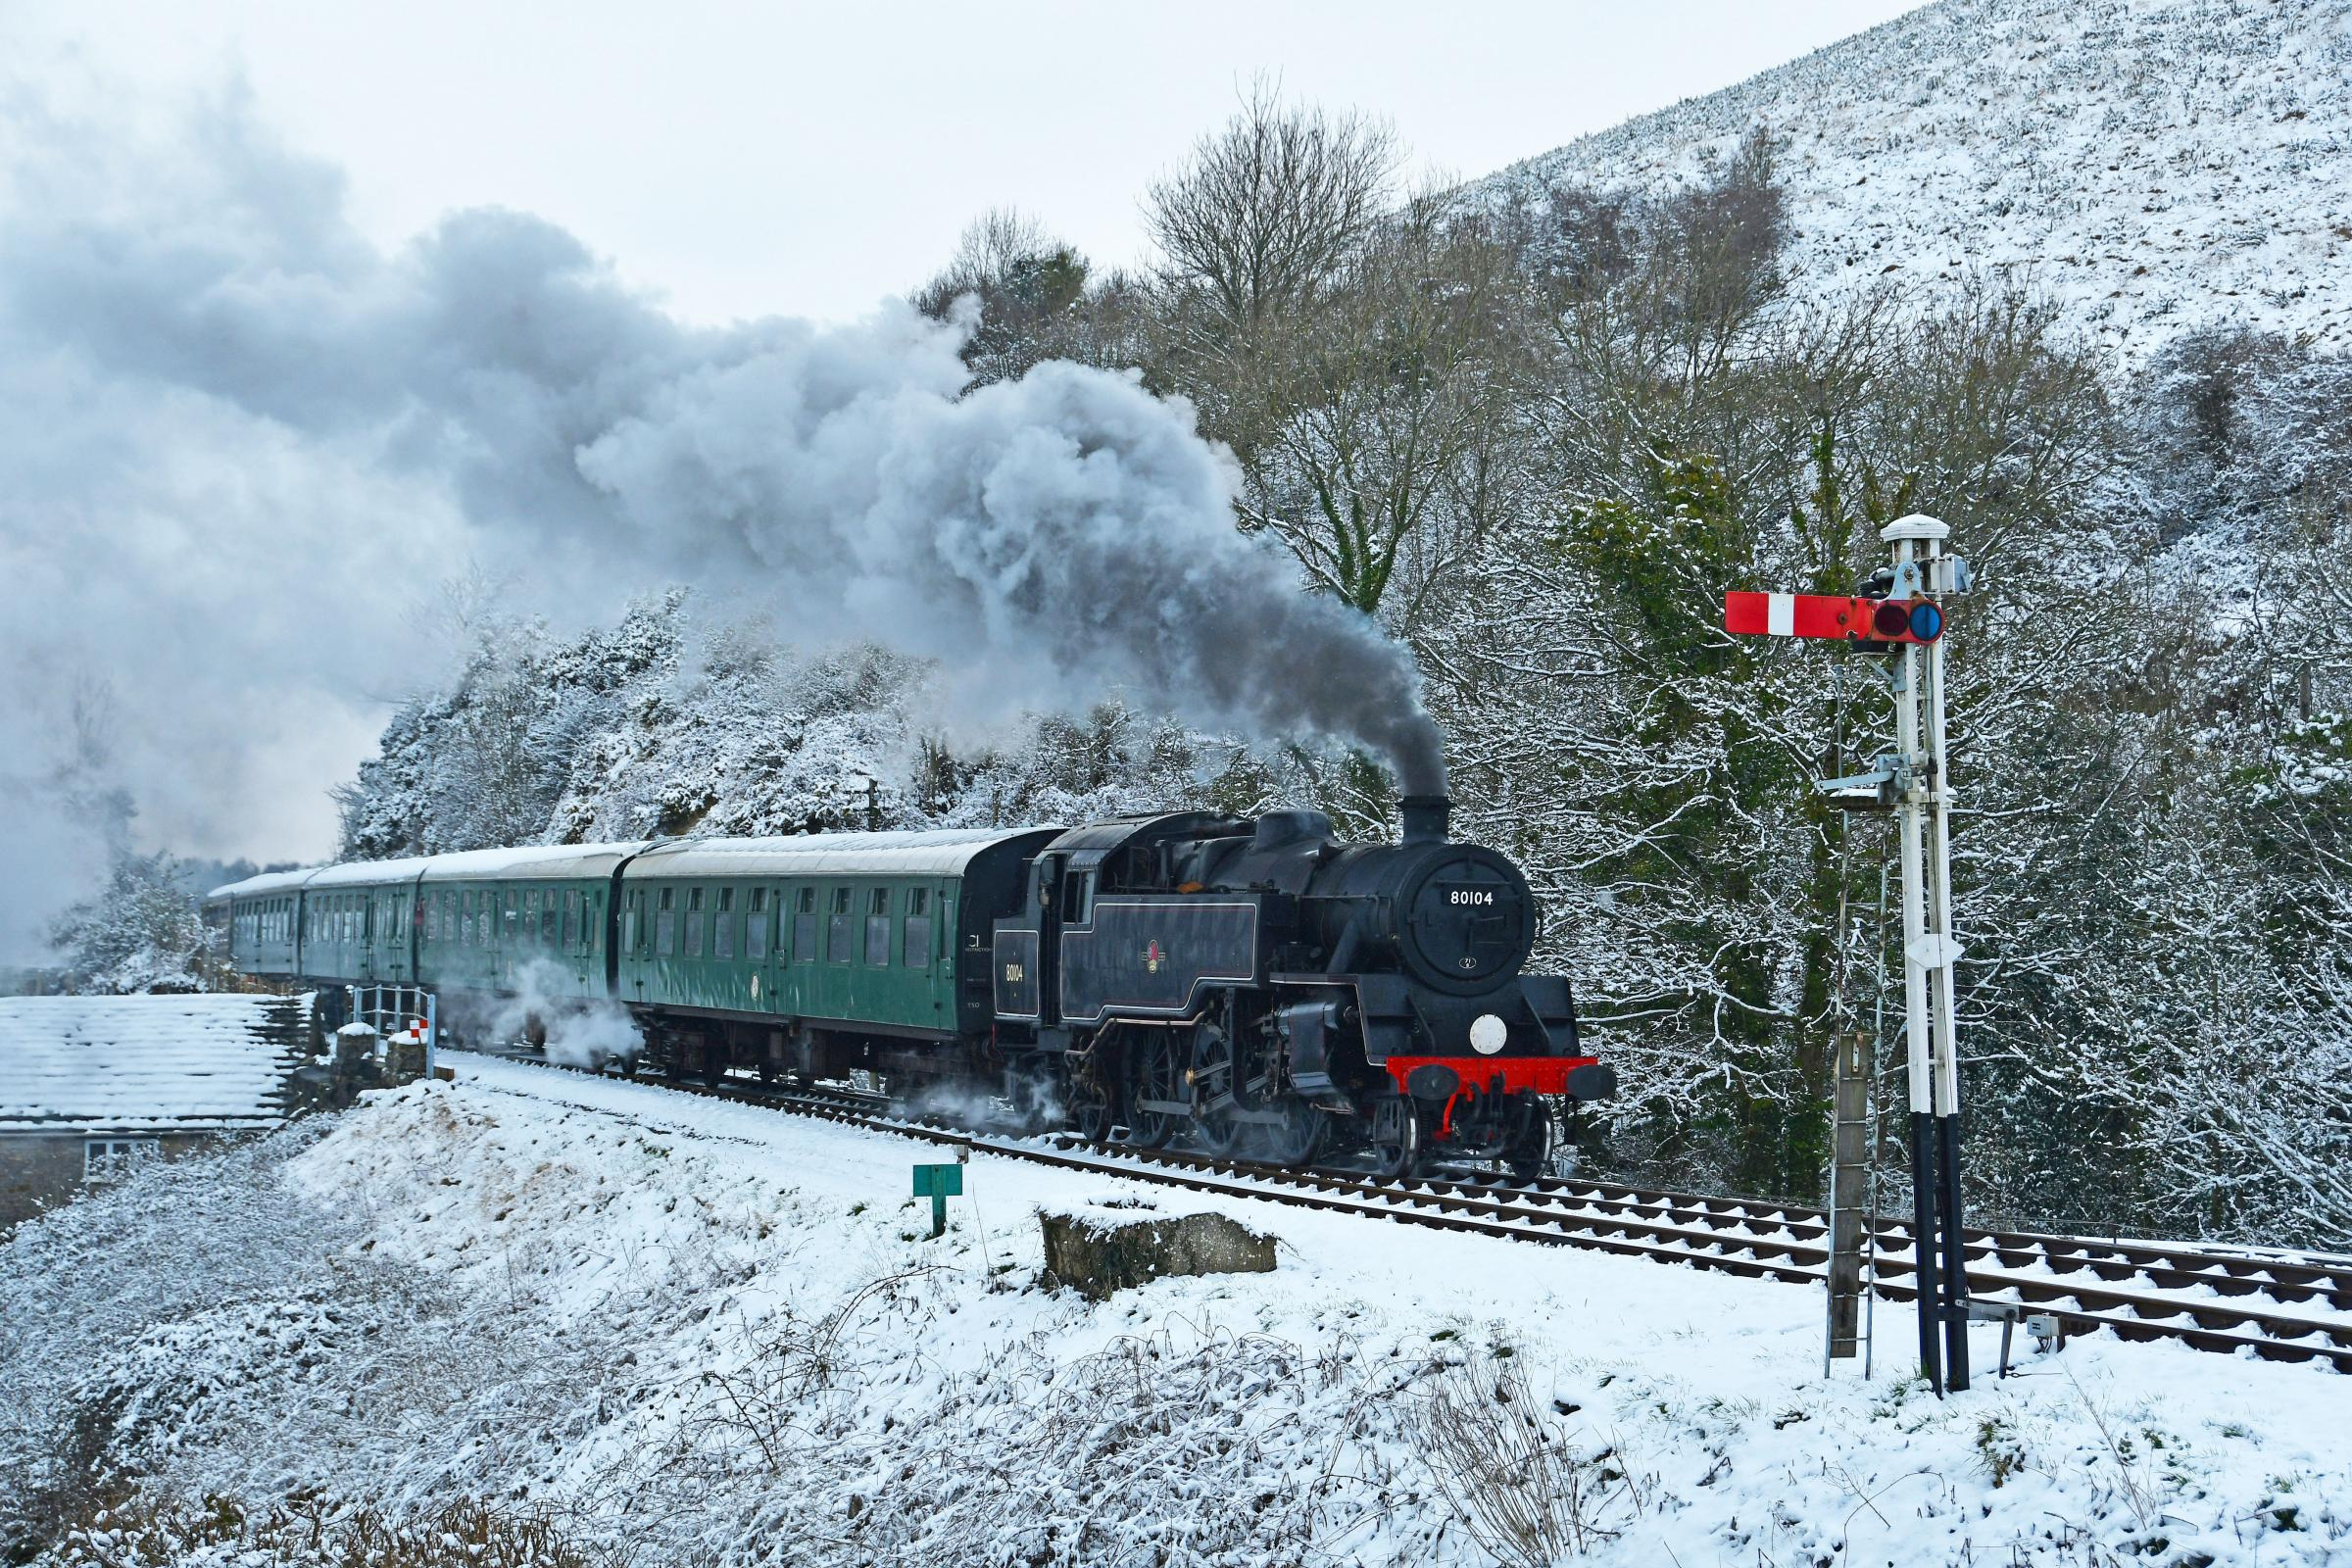 Swanage Railway's 80104 train steaming into Corfe Castle below a snow covered Challow Hill taken by David Watson.